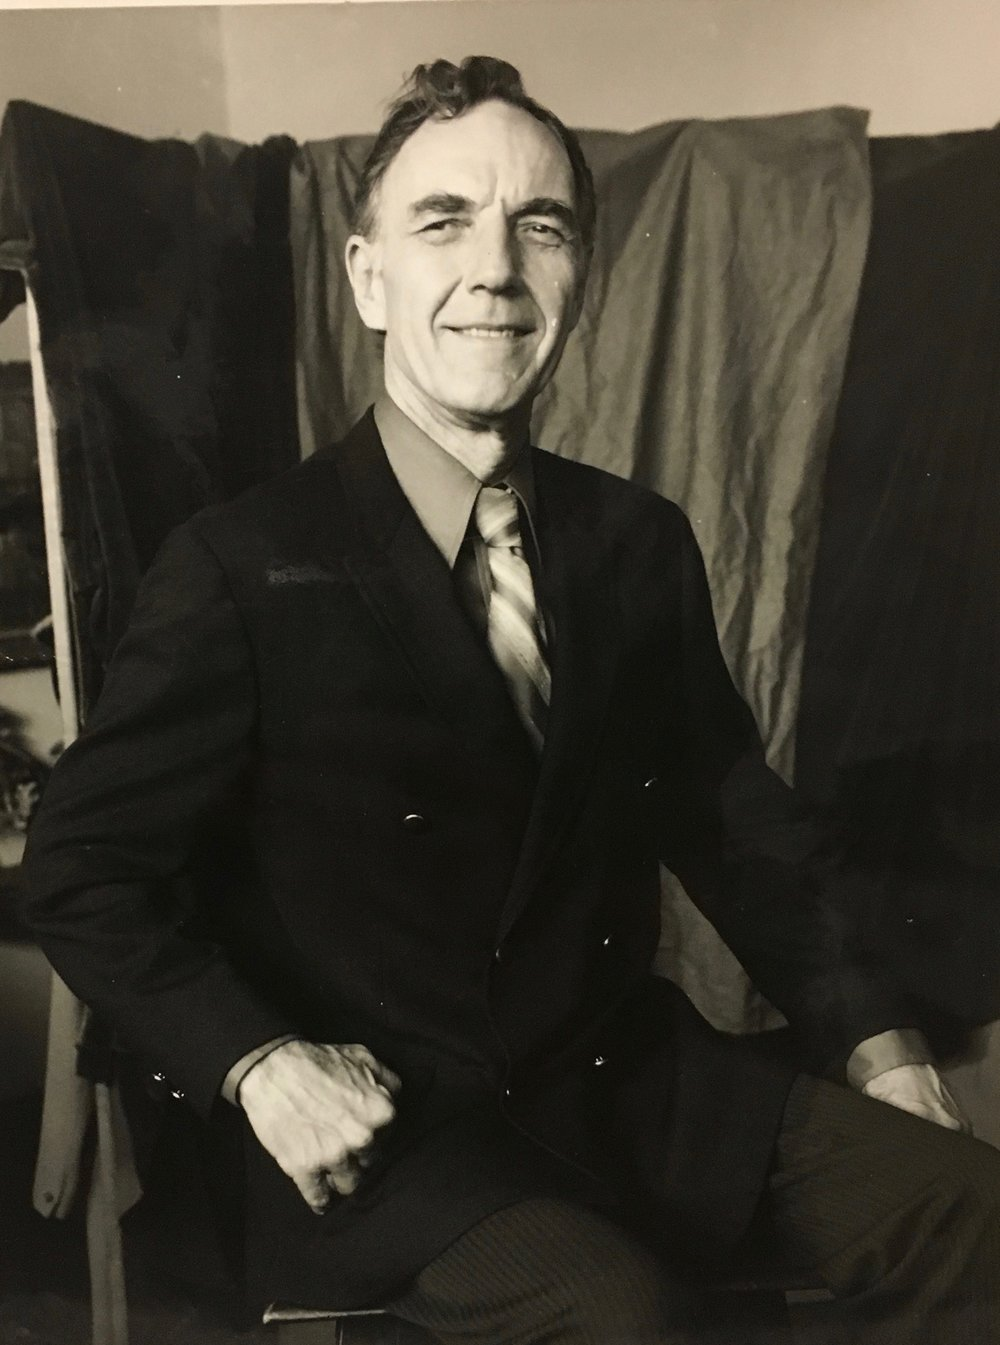 REW about 1990